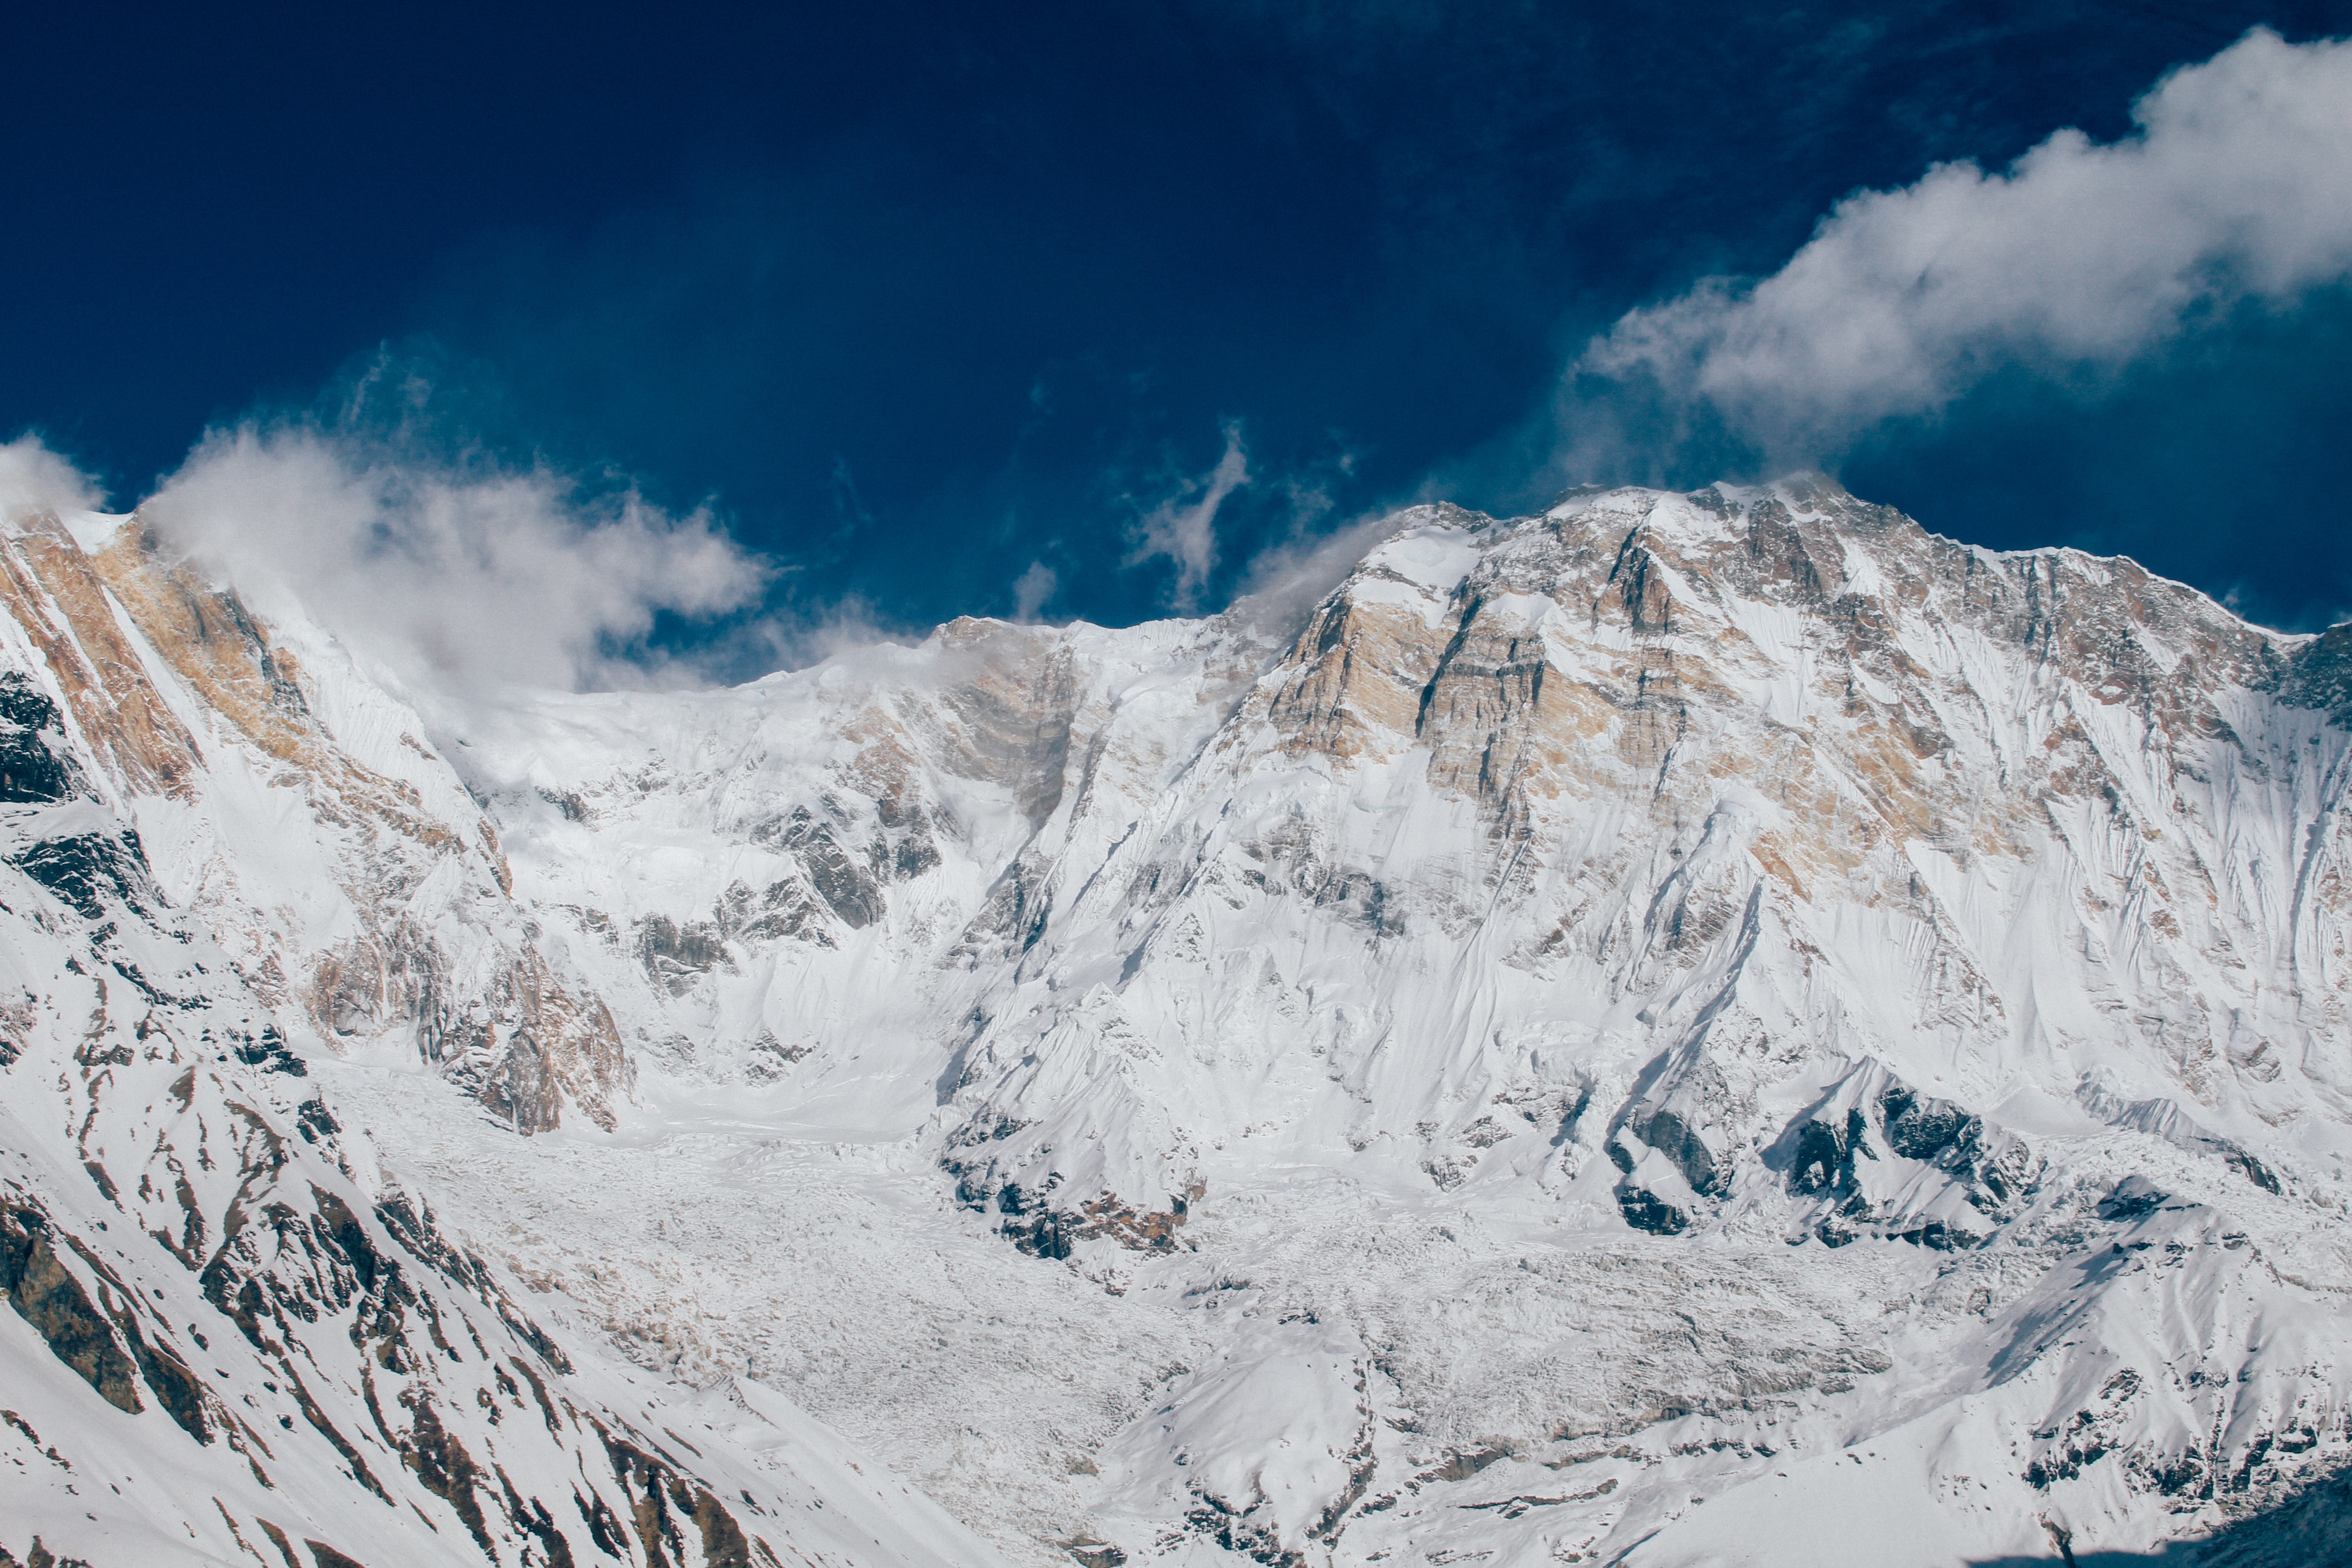 The cloud covered ridges and summits surrounding the Annapurna Base Camp in winter